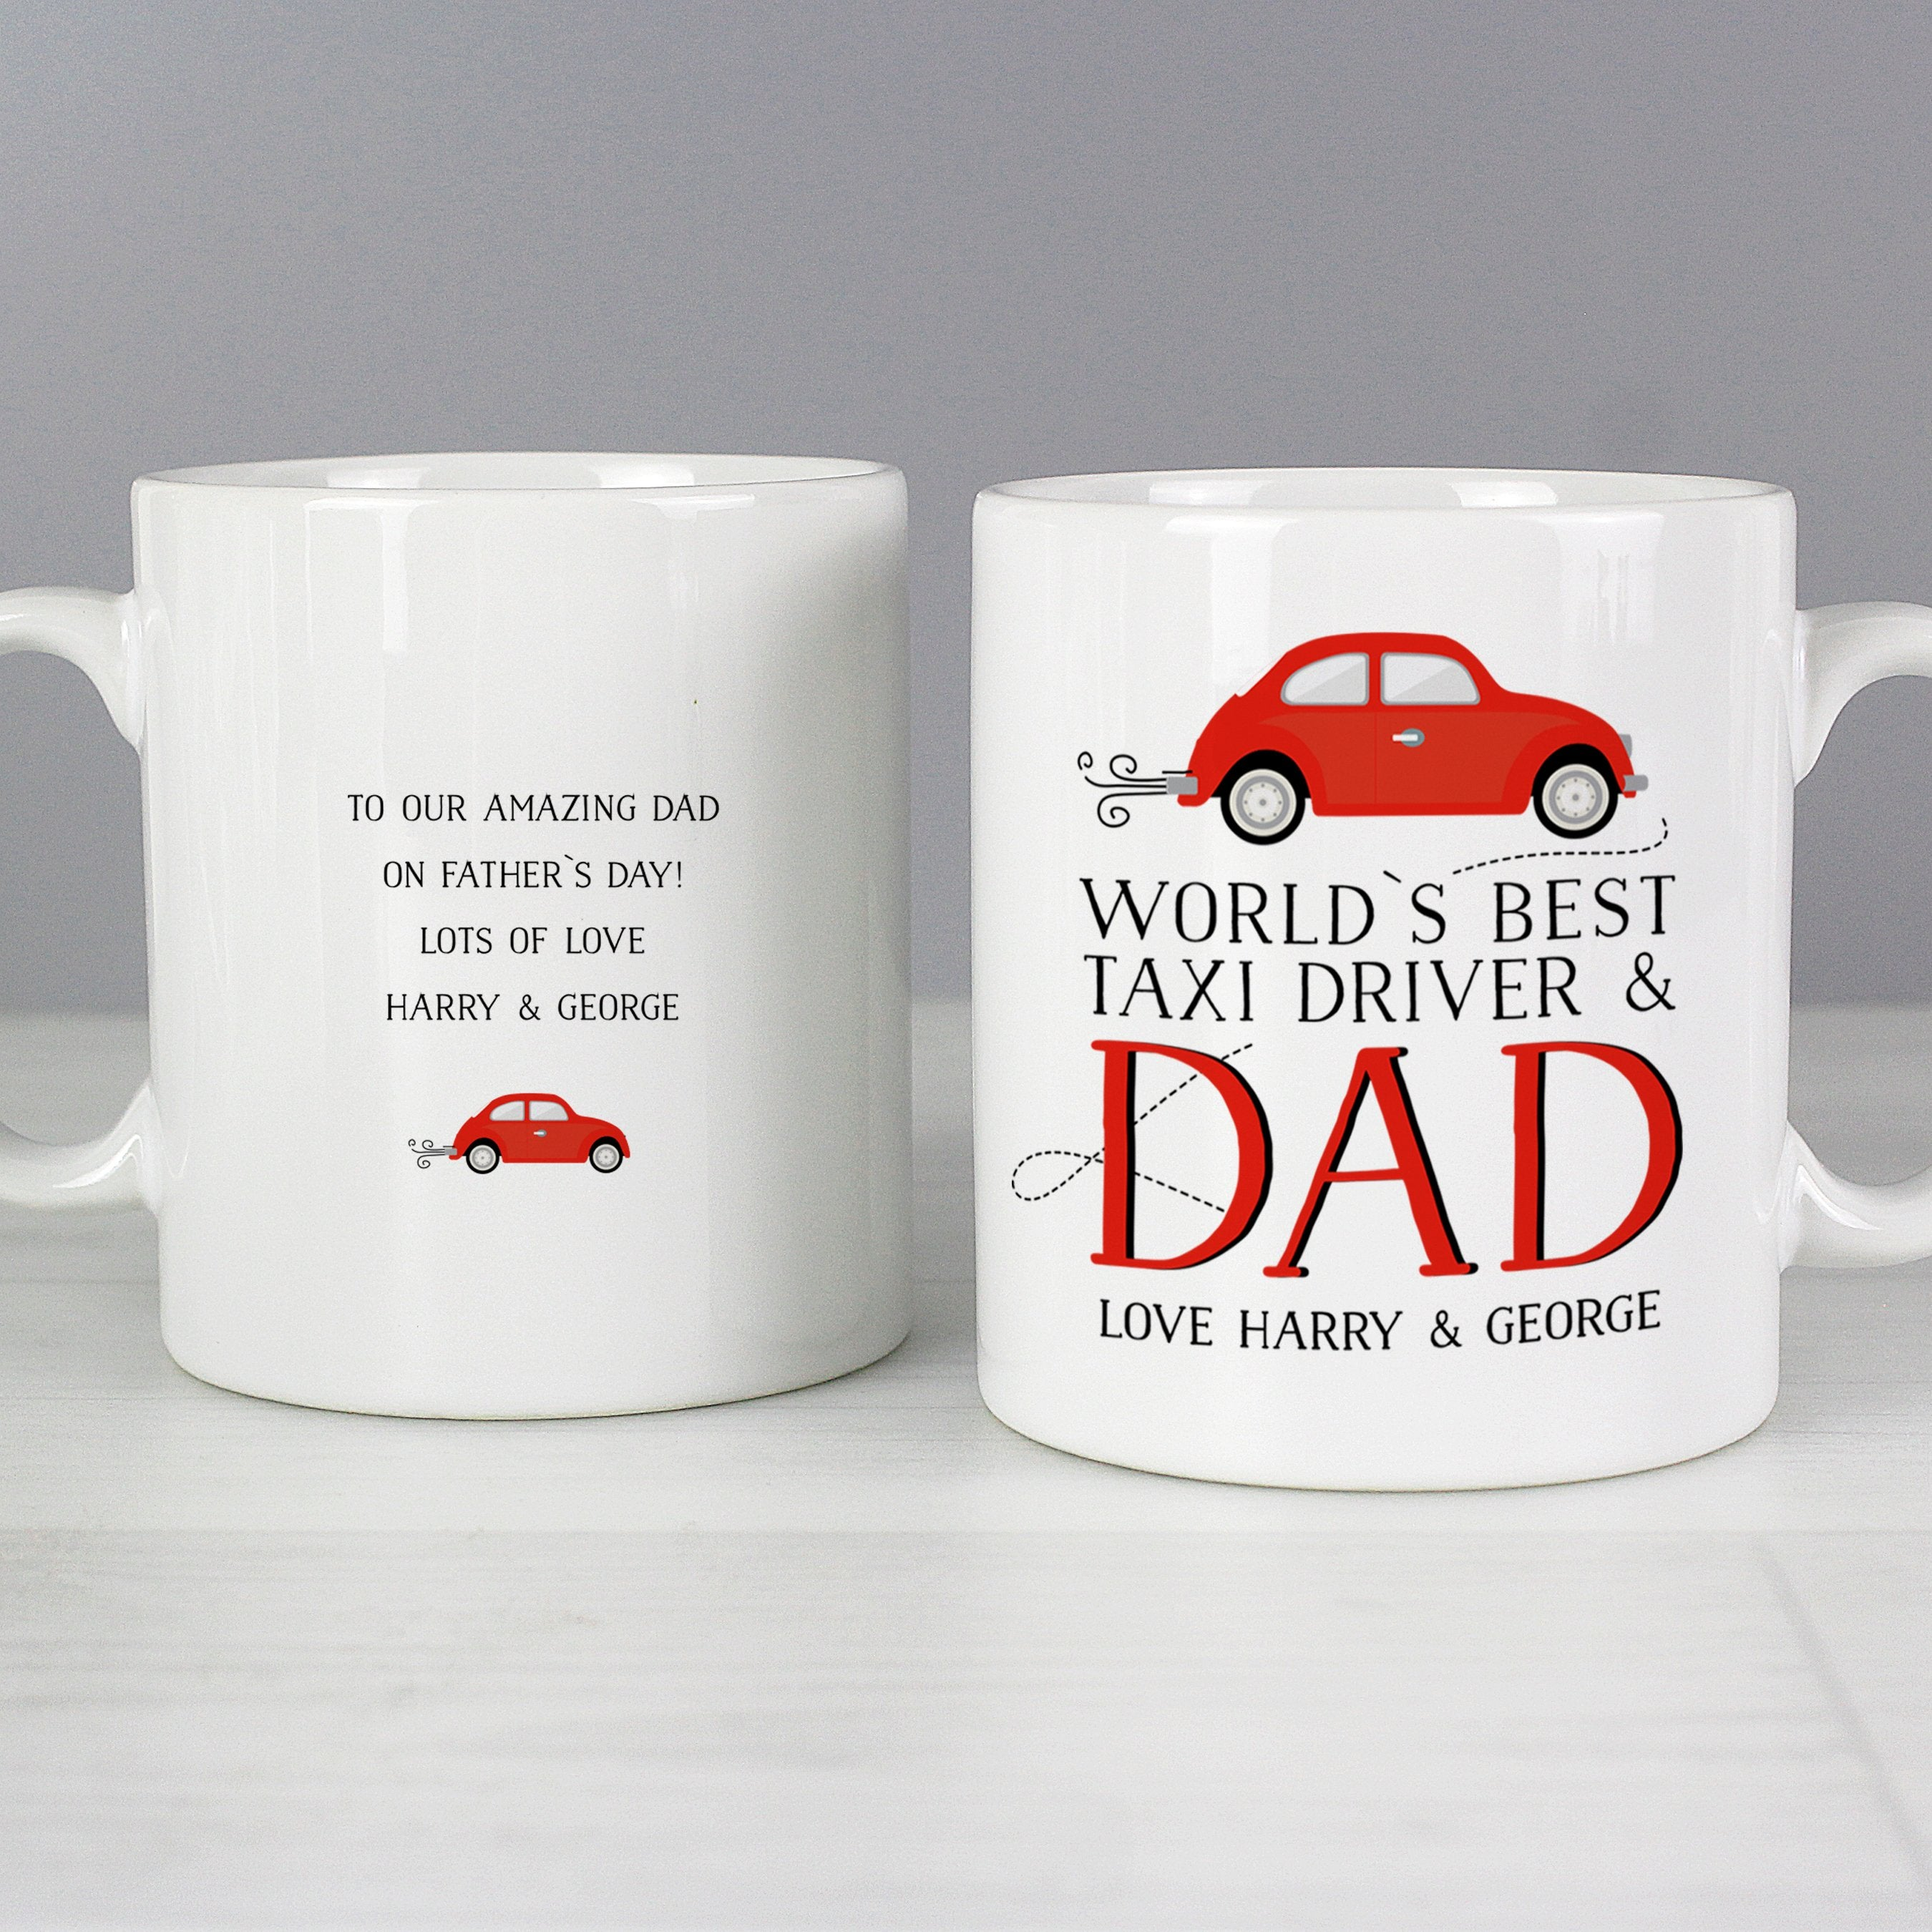 Personalised Worlds Best Taxi Driver Dad Ceramic Mug - Shop Personalised Gifts (4630084223062)